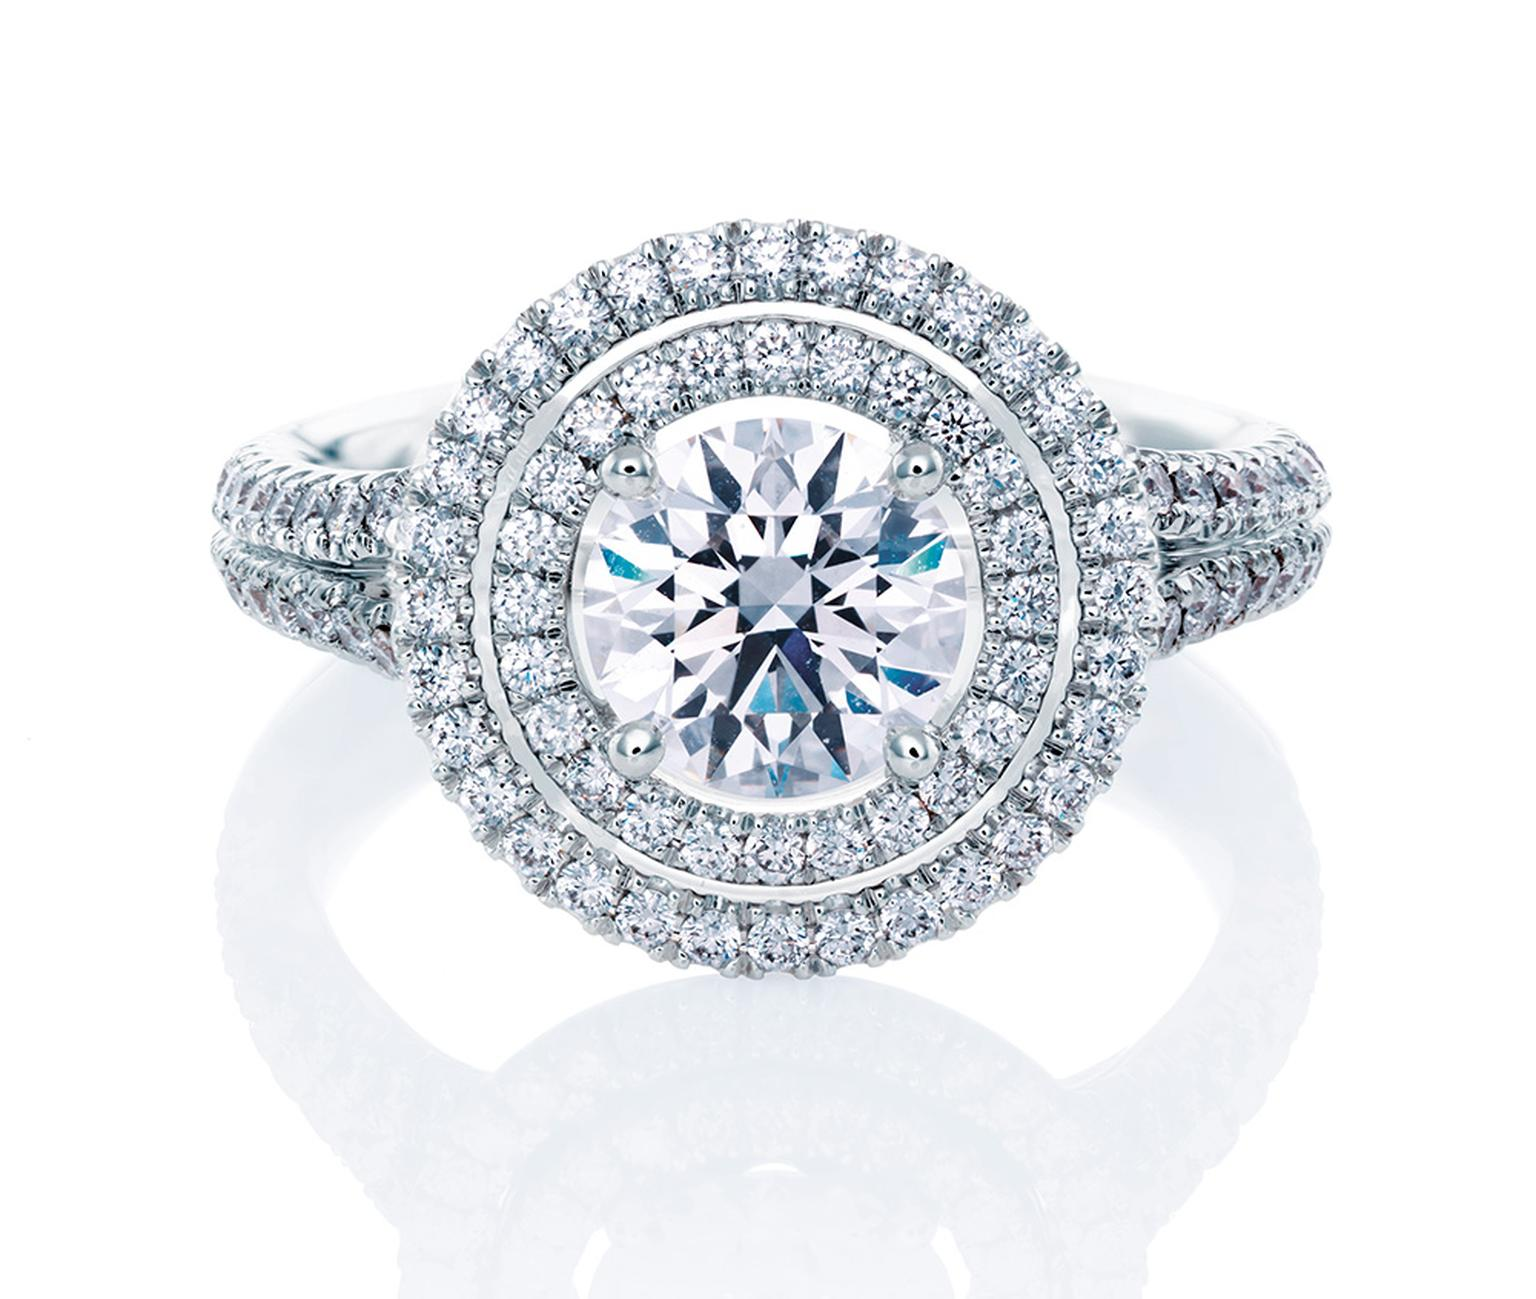 De Beers Aura Double Halo ring in platinum, set with a central round, brilliant-cut diamond and micro pavé diamonds (from: £7,650).